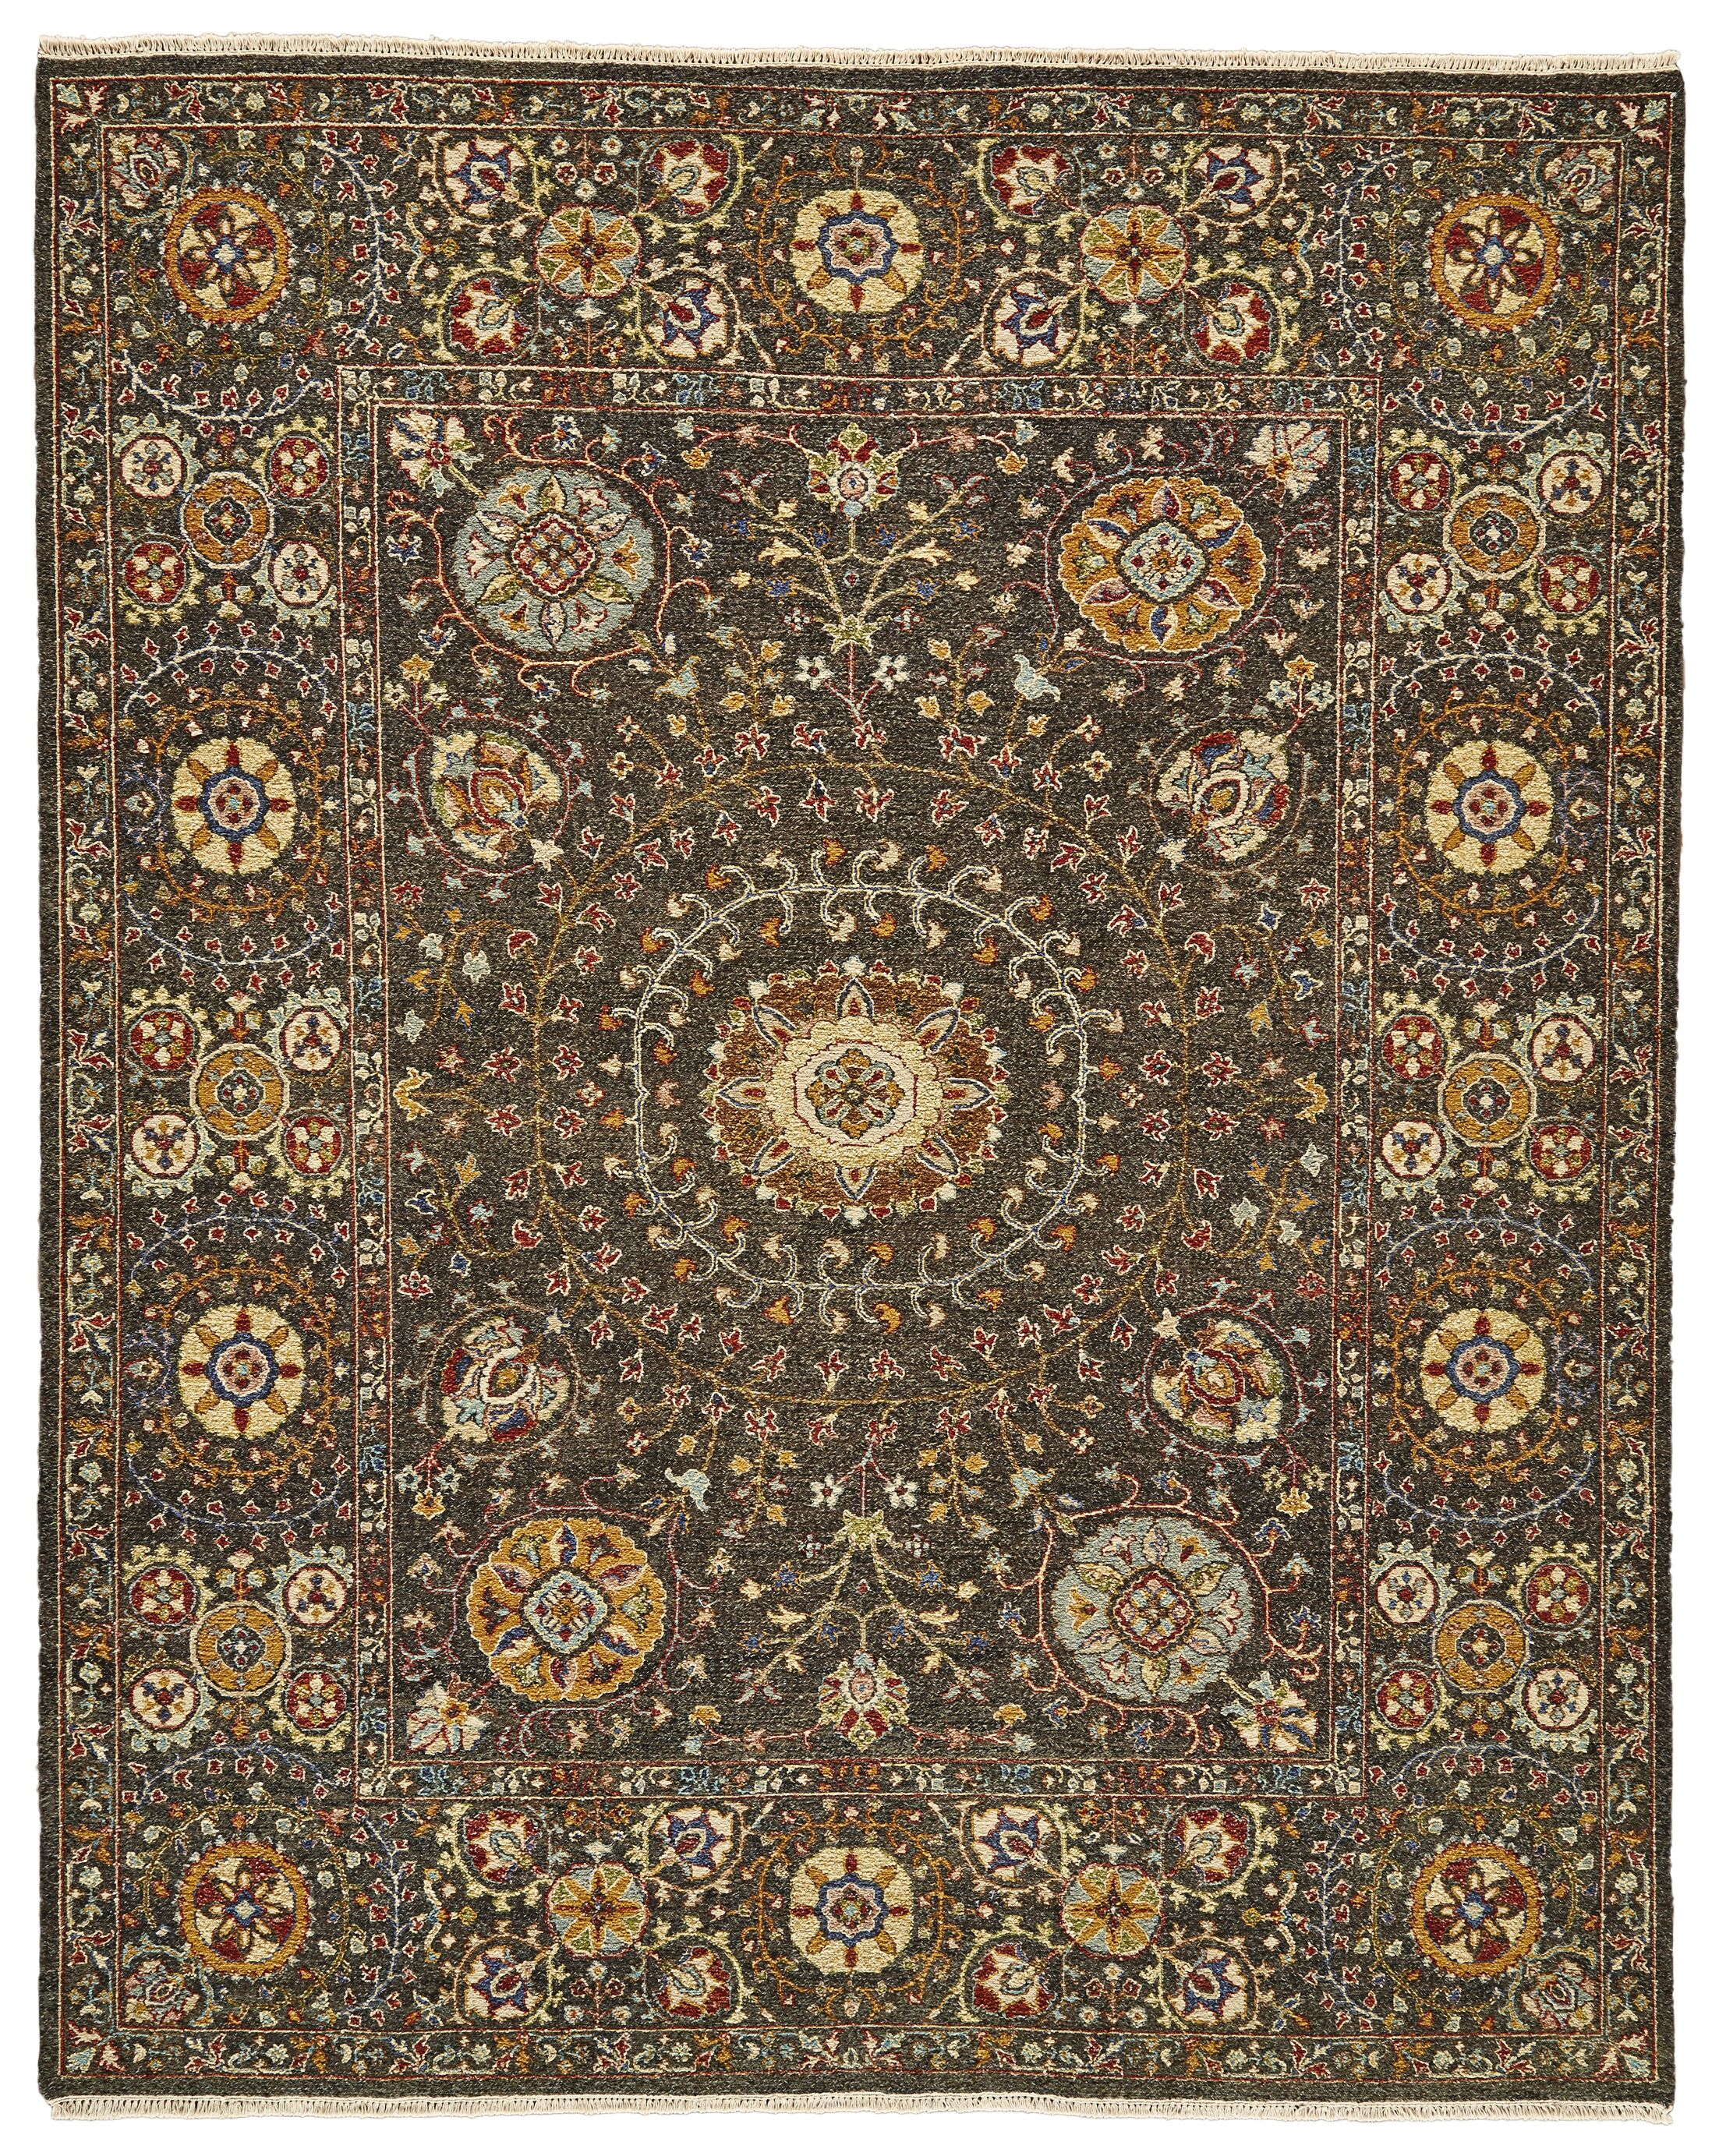 Kondo Hand-Knotted Wool Charcoal Area Rug Rug Size: Rectangle 9'6